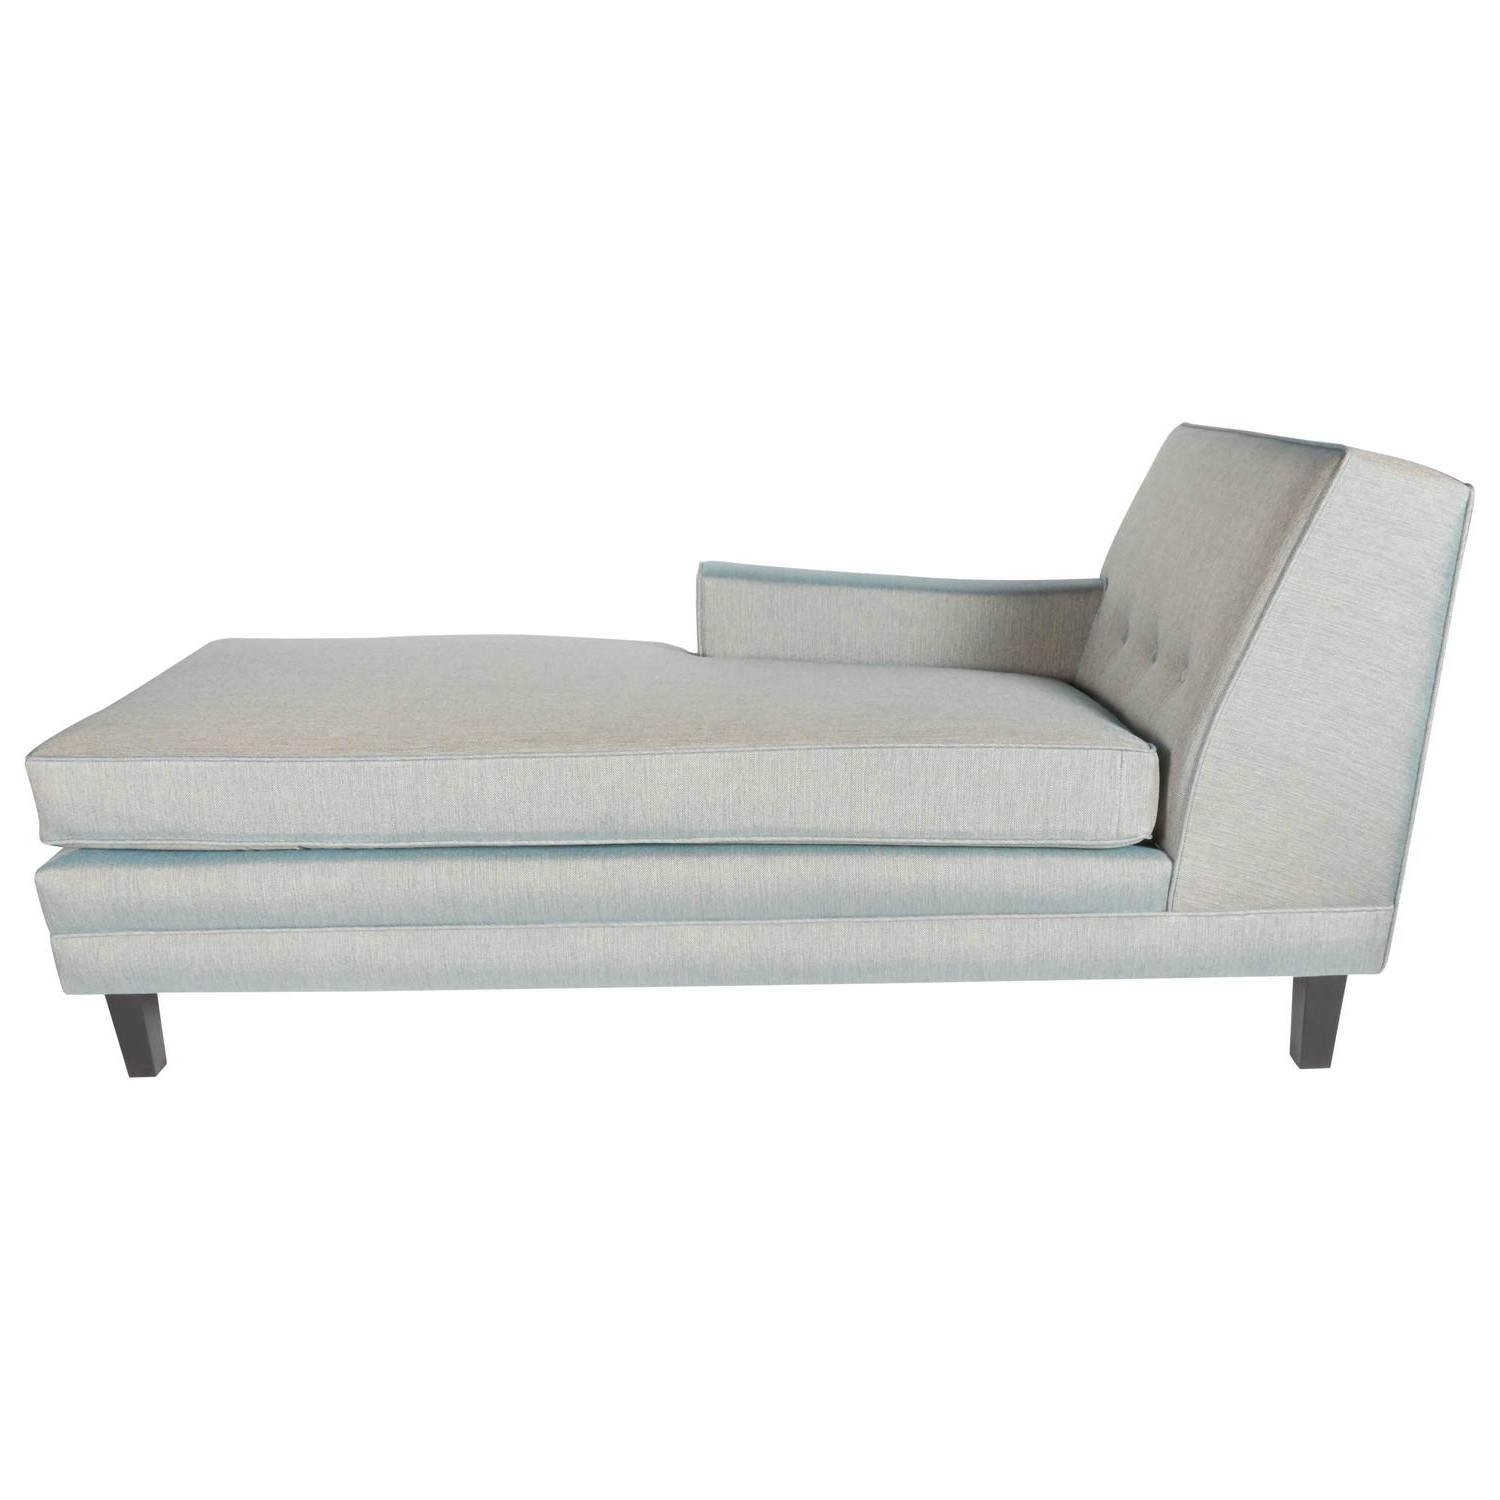 Famous Mid Century Chaises Regarding Mid Century Modern Chaise Lounge With Low Profile Design At 1Stdibs (View 3 of 15)